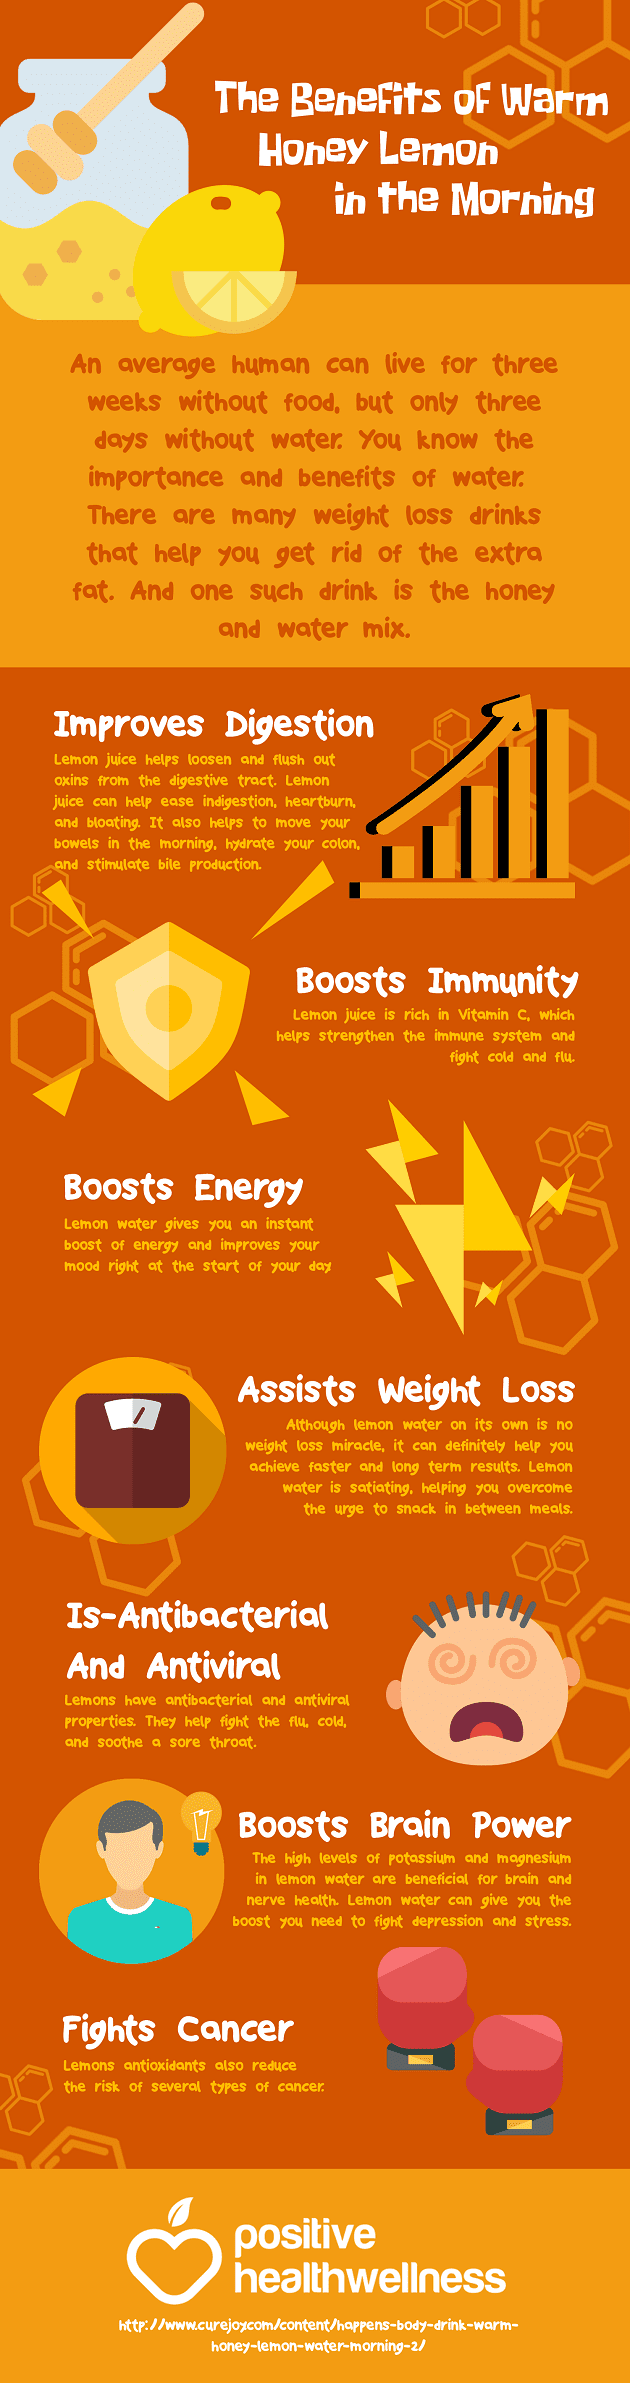 The Benefits Of Warm Honey Lemon In The Morning #infographic #Health #Warm Honey Lemon #Morning #Honey,